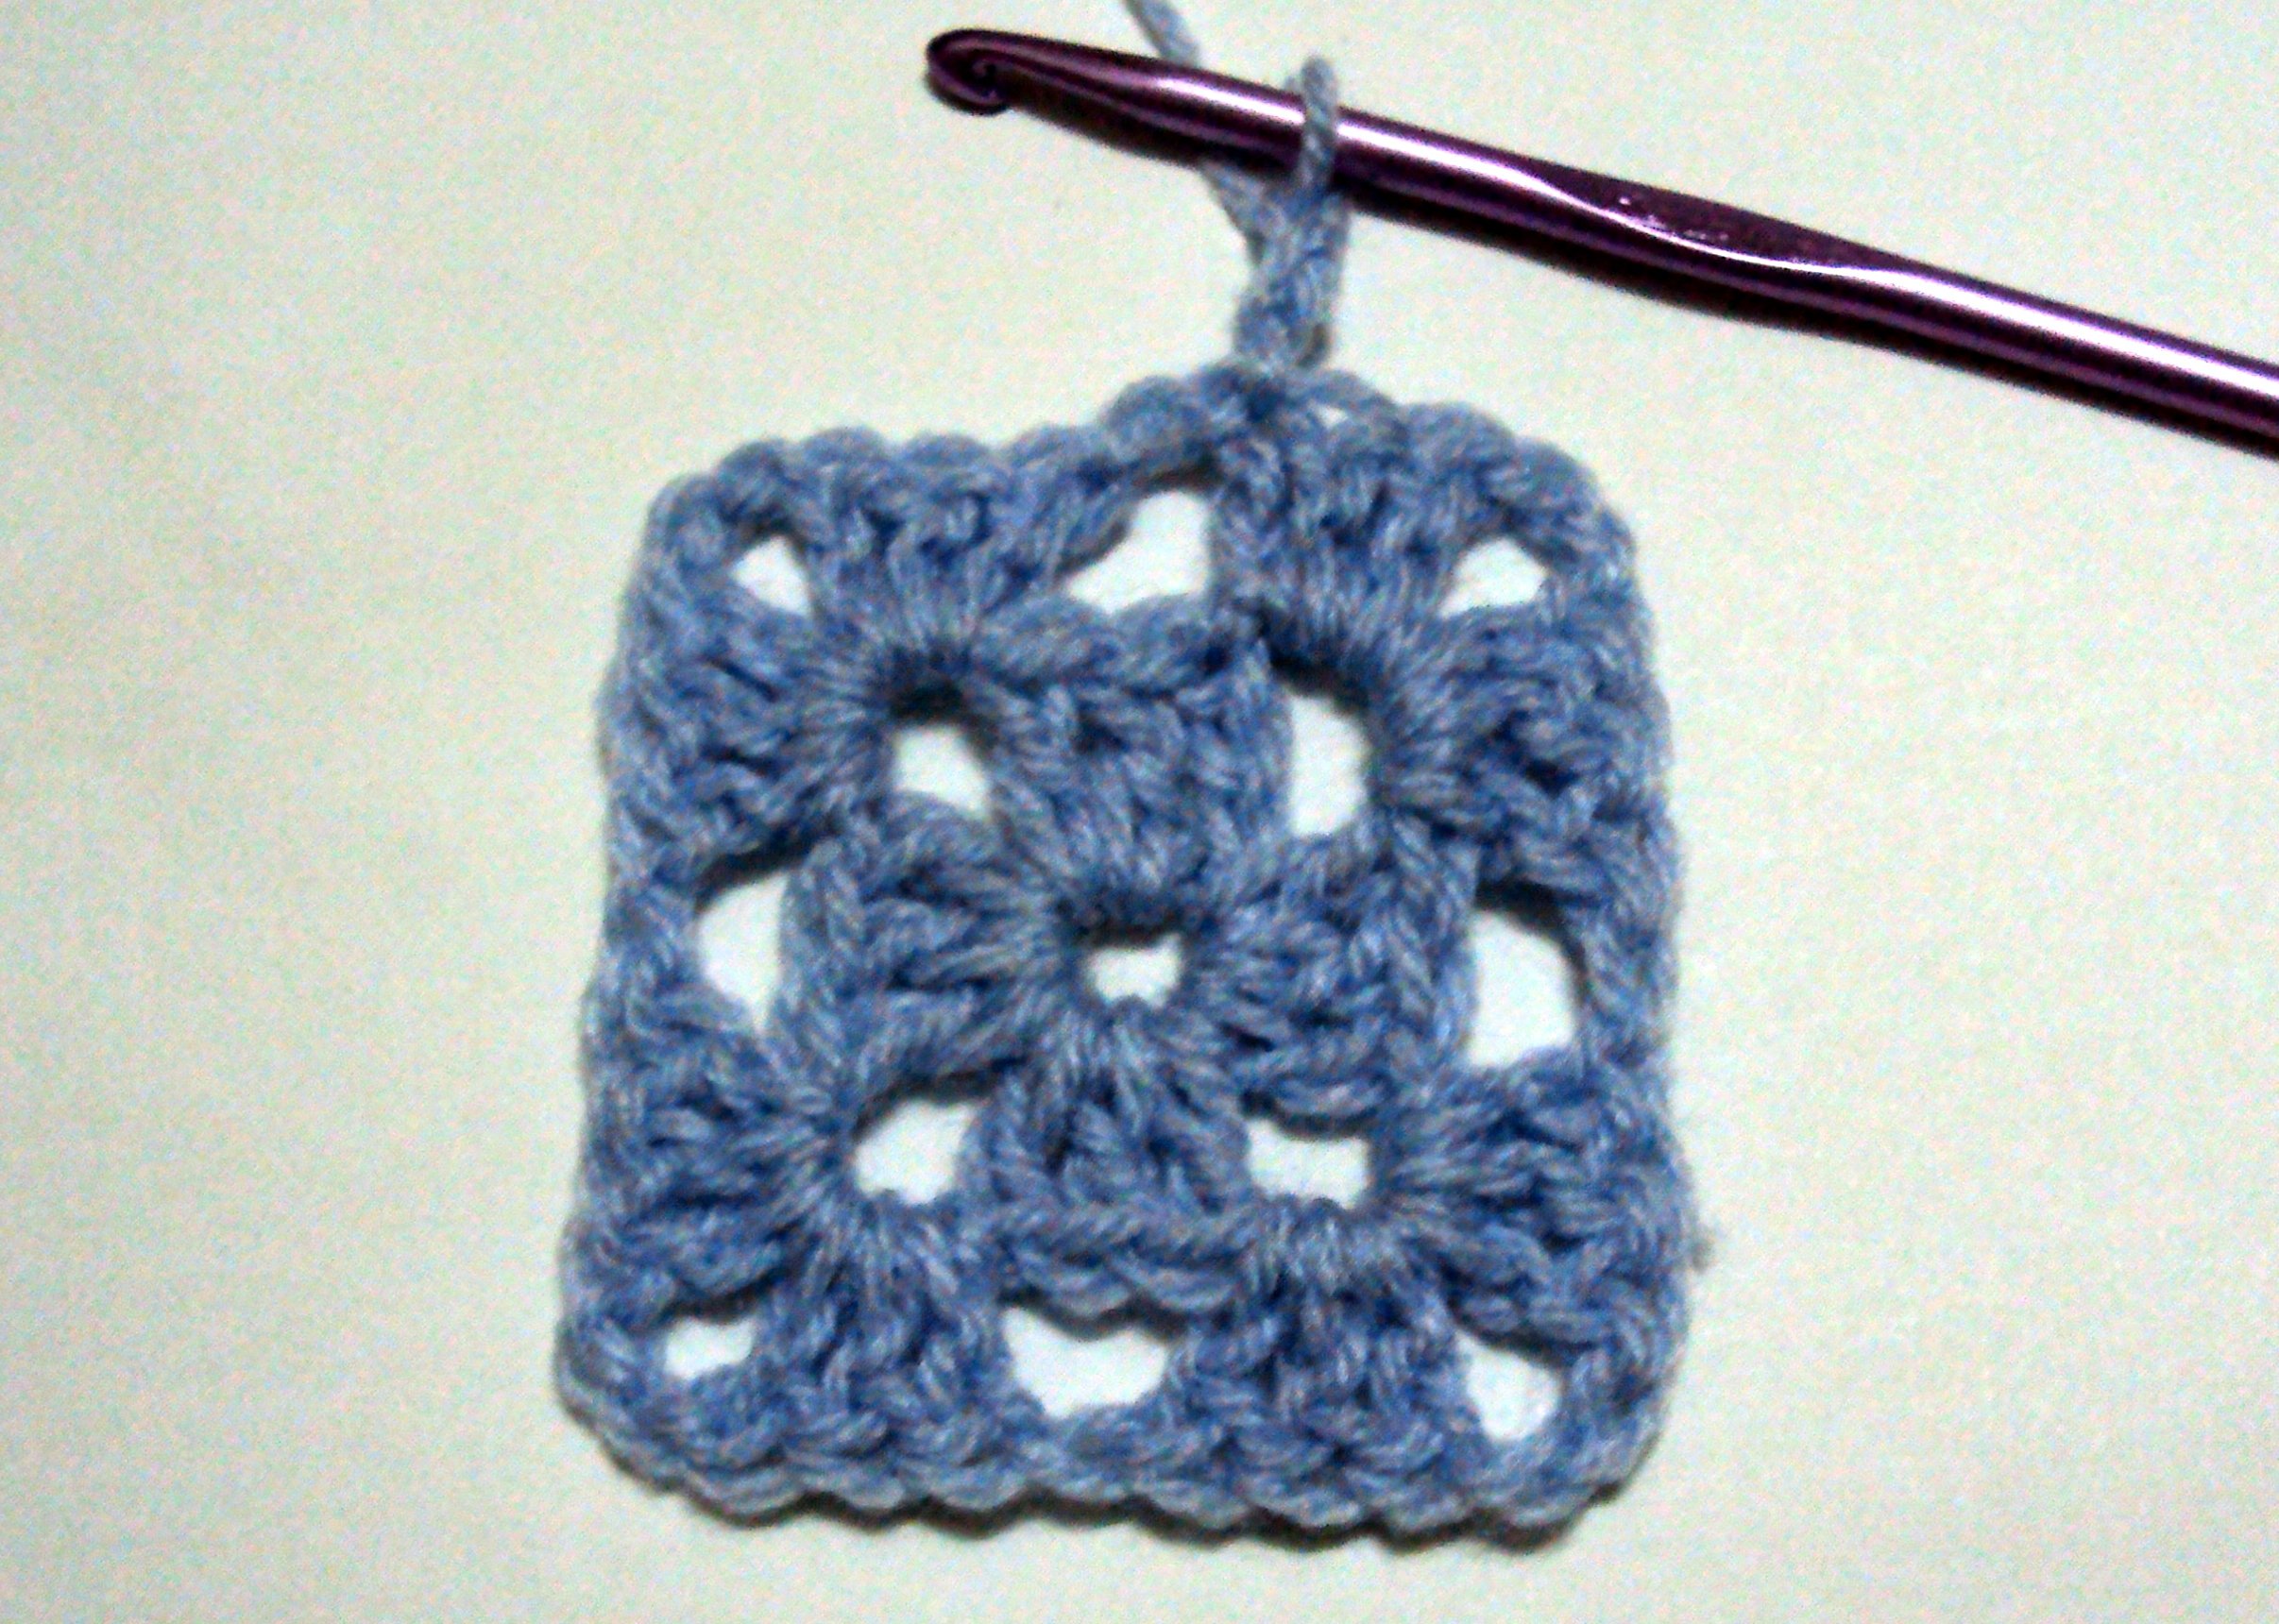 Crochet Stitches For Beginners Step By Step : Crochet Patterns For Beginners Step By Step crochet spot ? blog ...